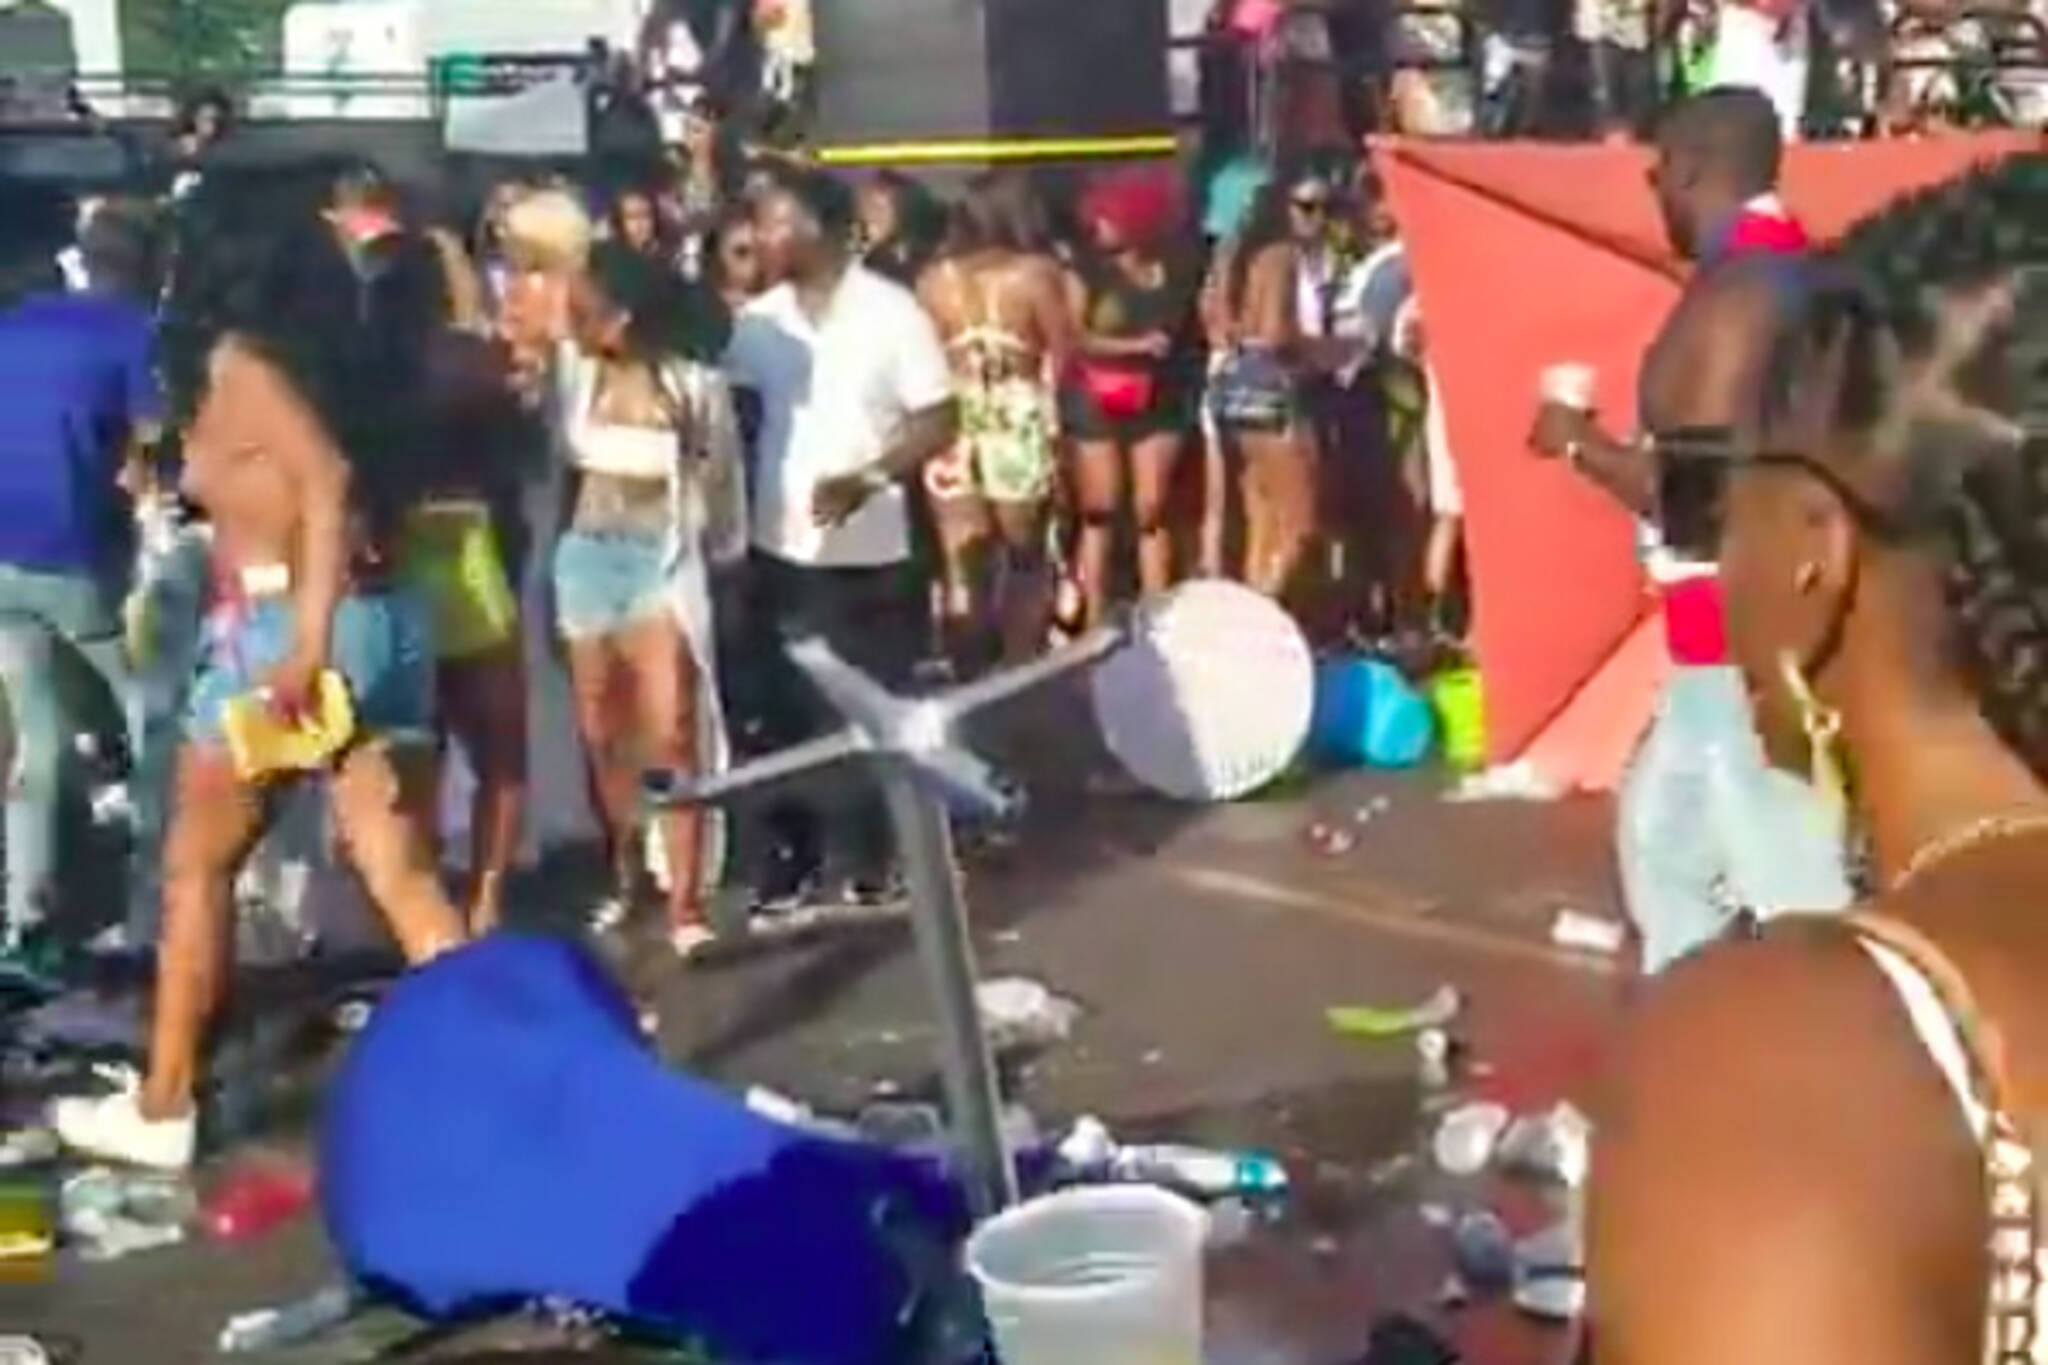 Caribbean festival outside Woodbine Mall in Toronto marred by violence